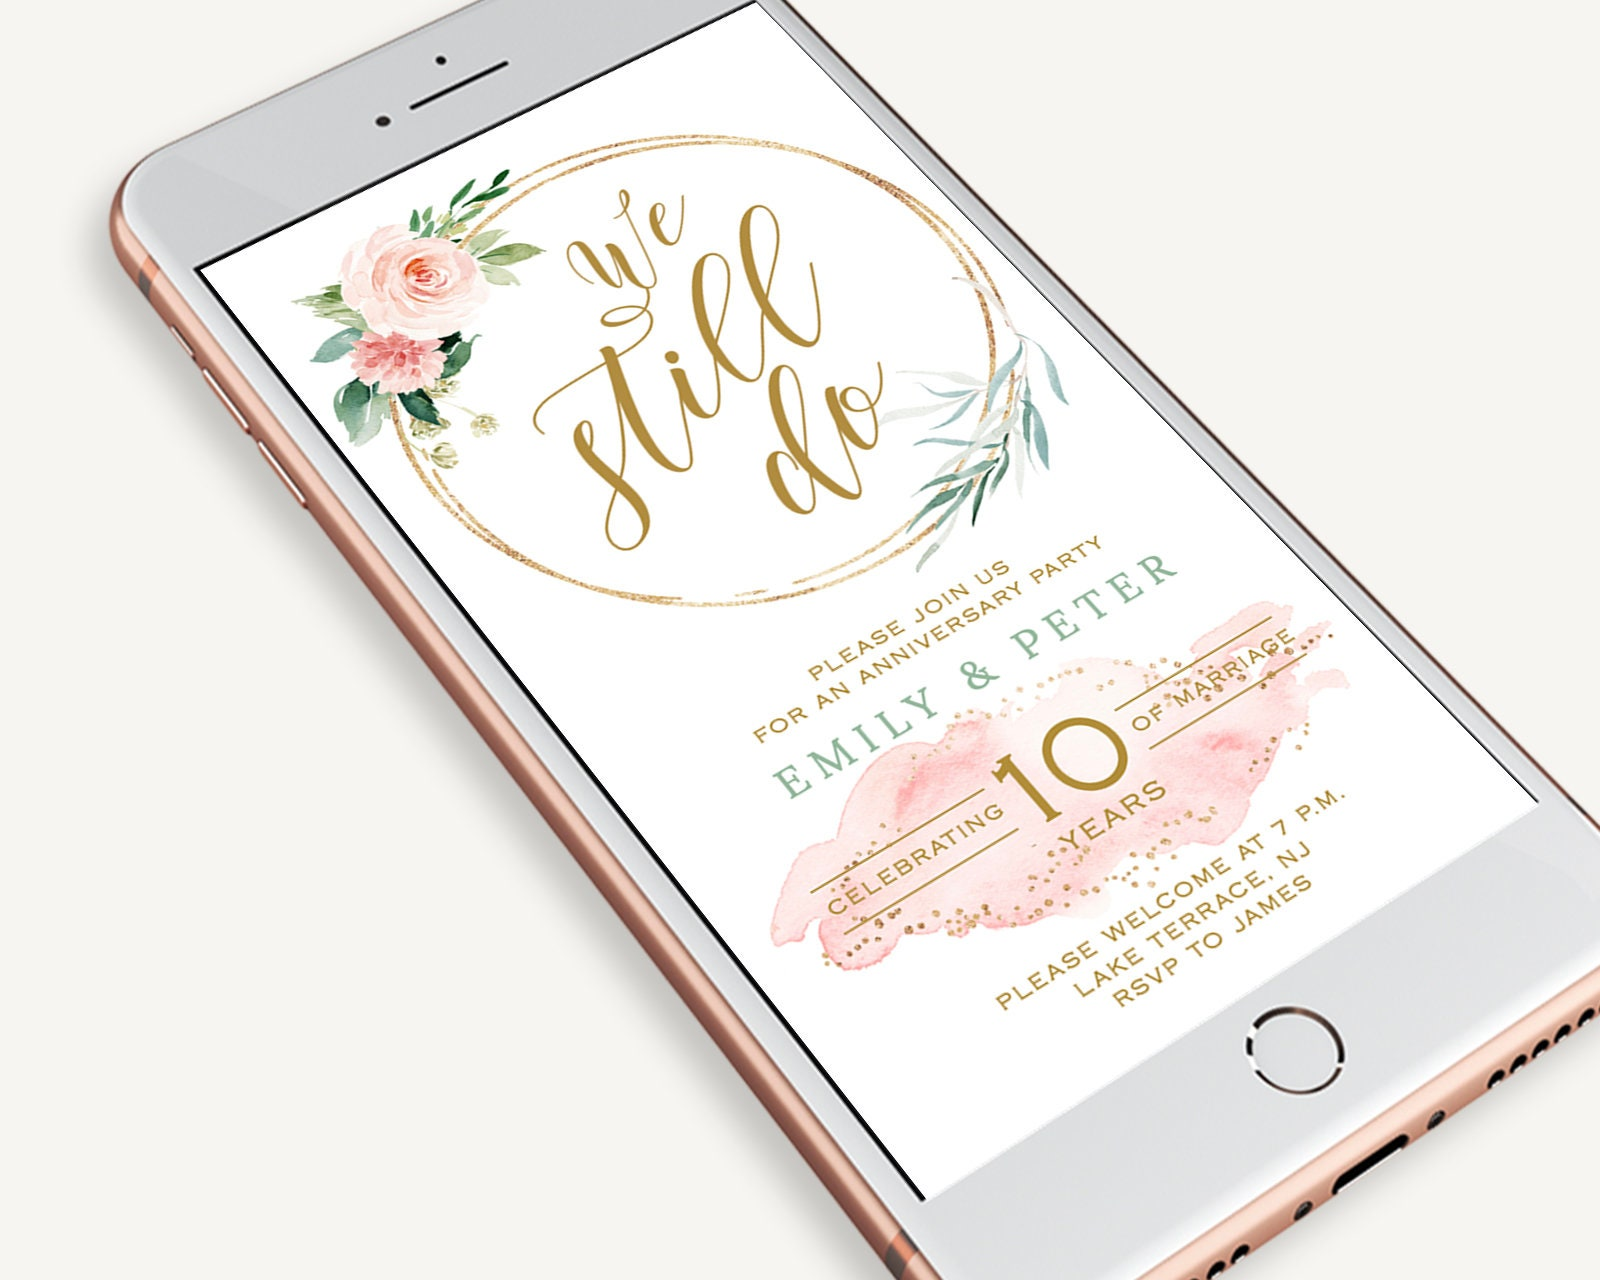 Electronic Wedding Anniversary Invitation Blush Pink And Gold Glitter Invite Dusty Pink Editable Template Templett Sms Smartphone Ethr